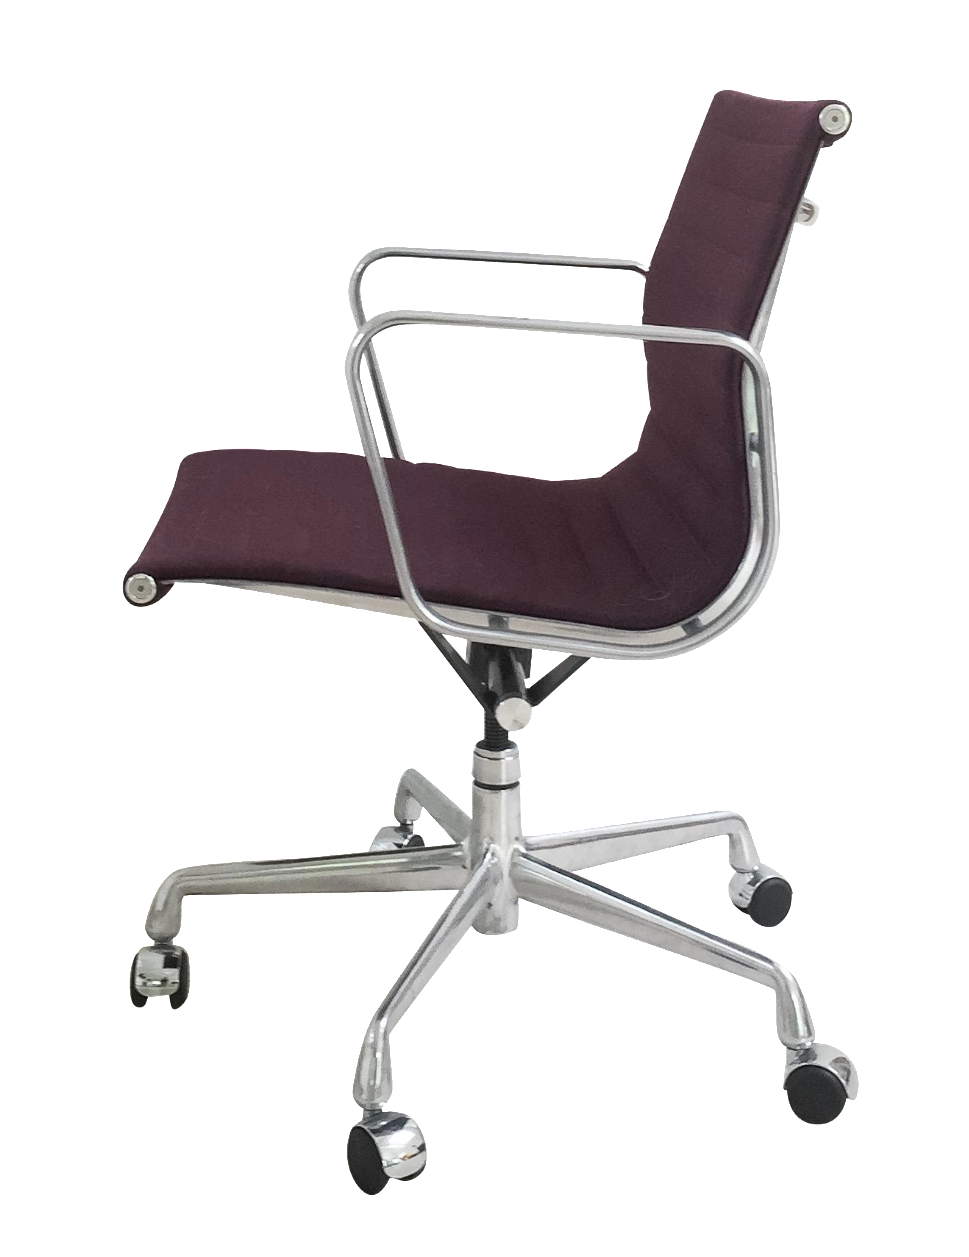 Eames Aluminum Management Chair in Eggplant Chairish : 34c33ca7 7531 412d b428 22c0ee04581c from www.chairish.com size 969 x 1257 png 386kB